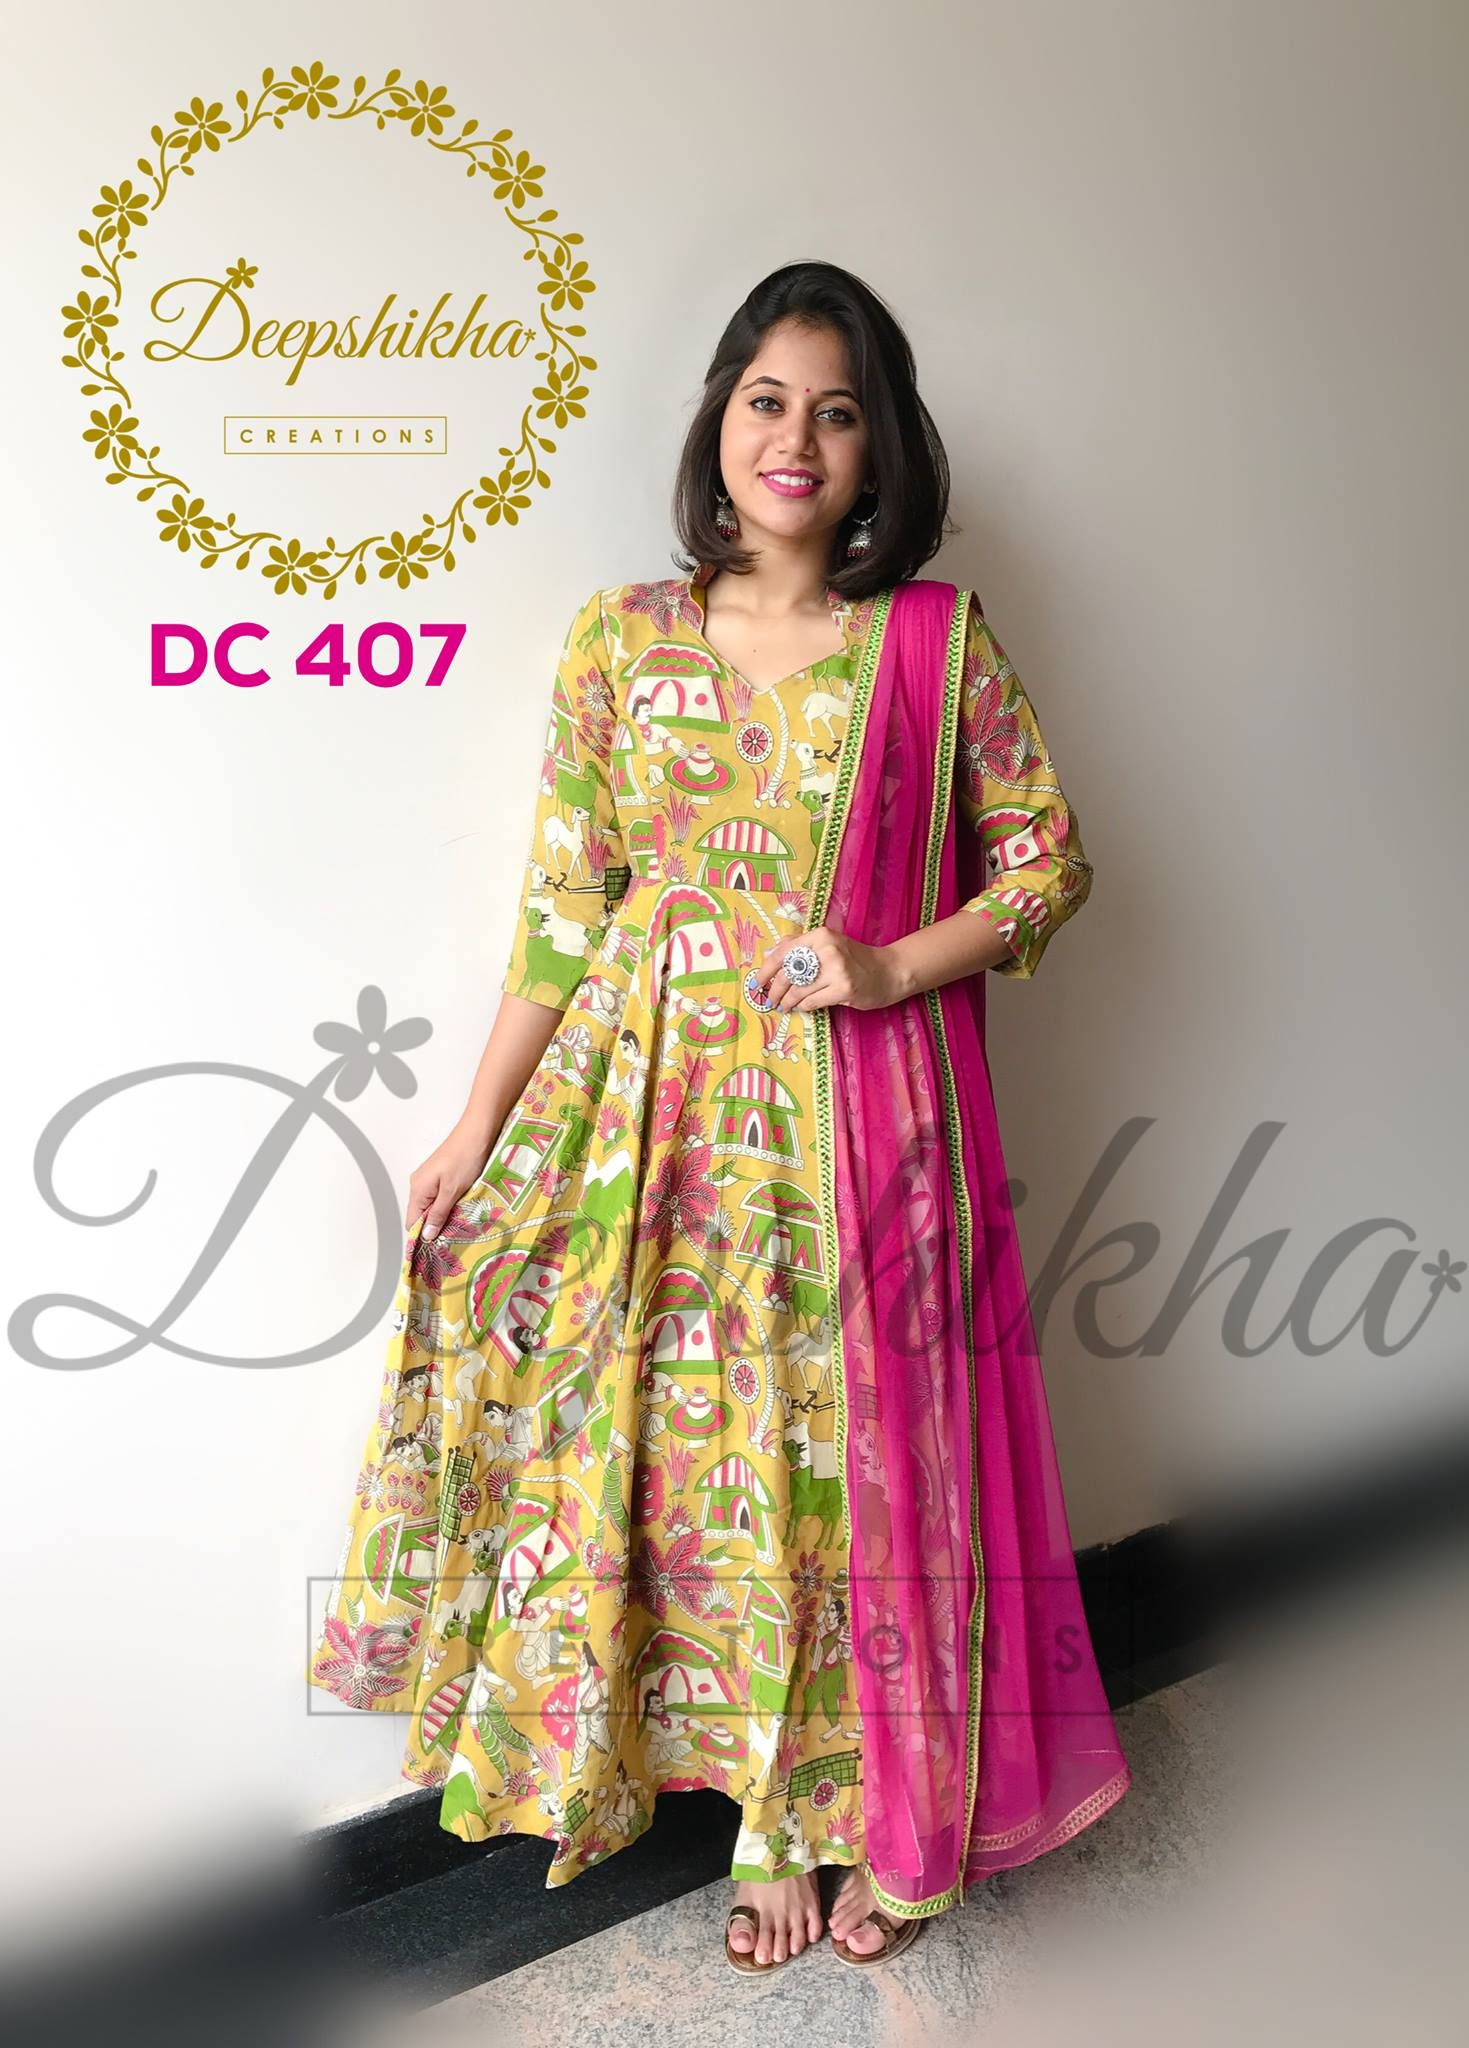 928813b6c58ee7 DC 407. Beautiful olive green color floor lenght dress with village attire  print.For queries kindly whatsapp  +91 9059683293 16 August 2017